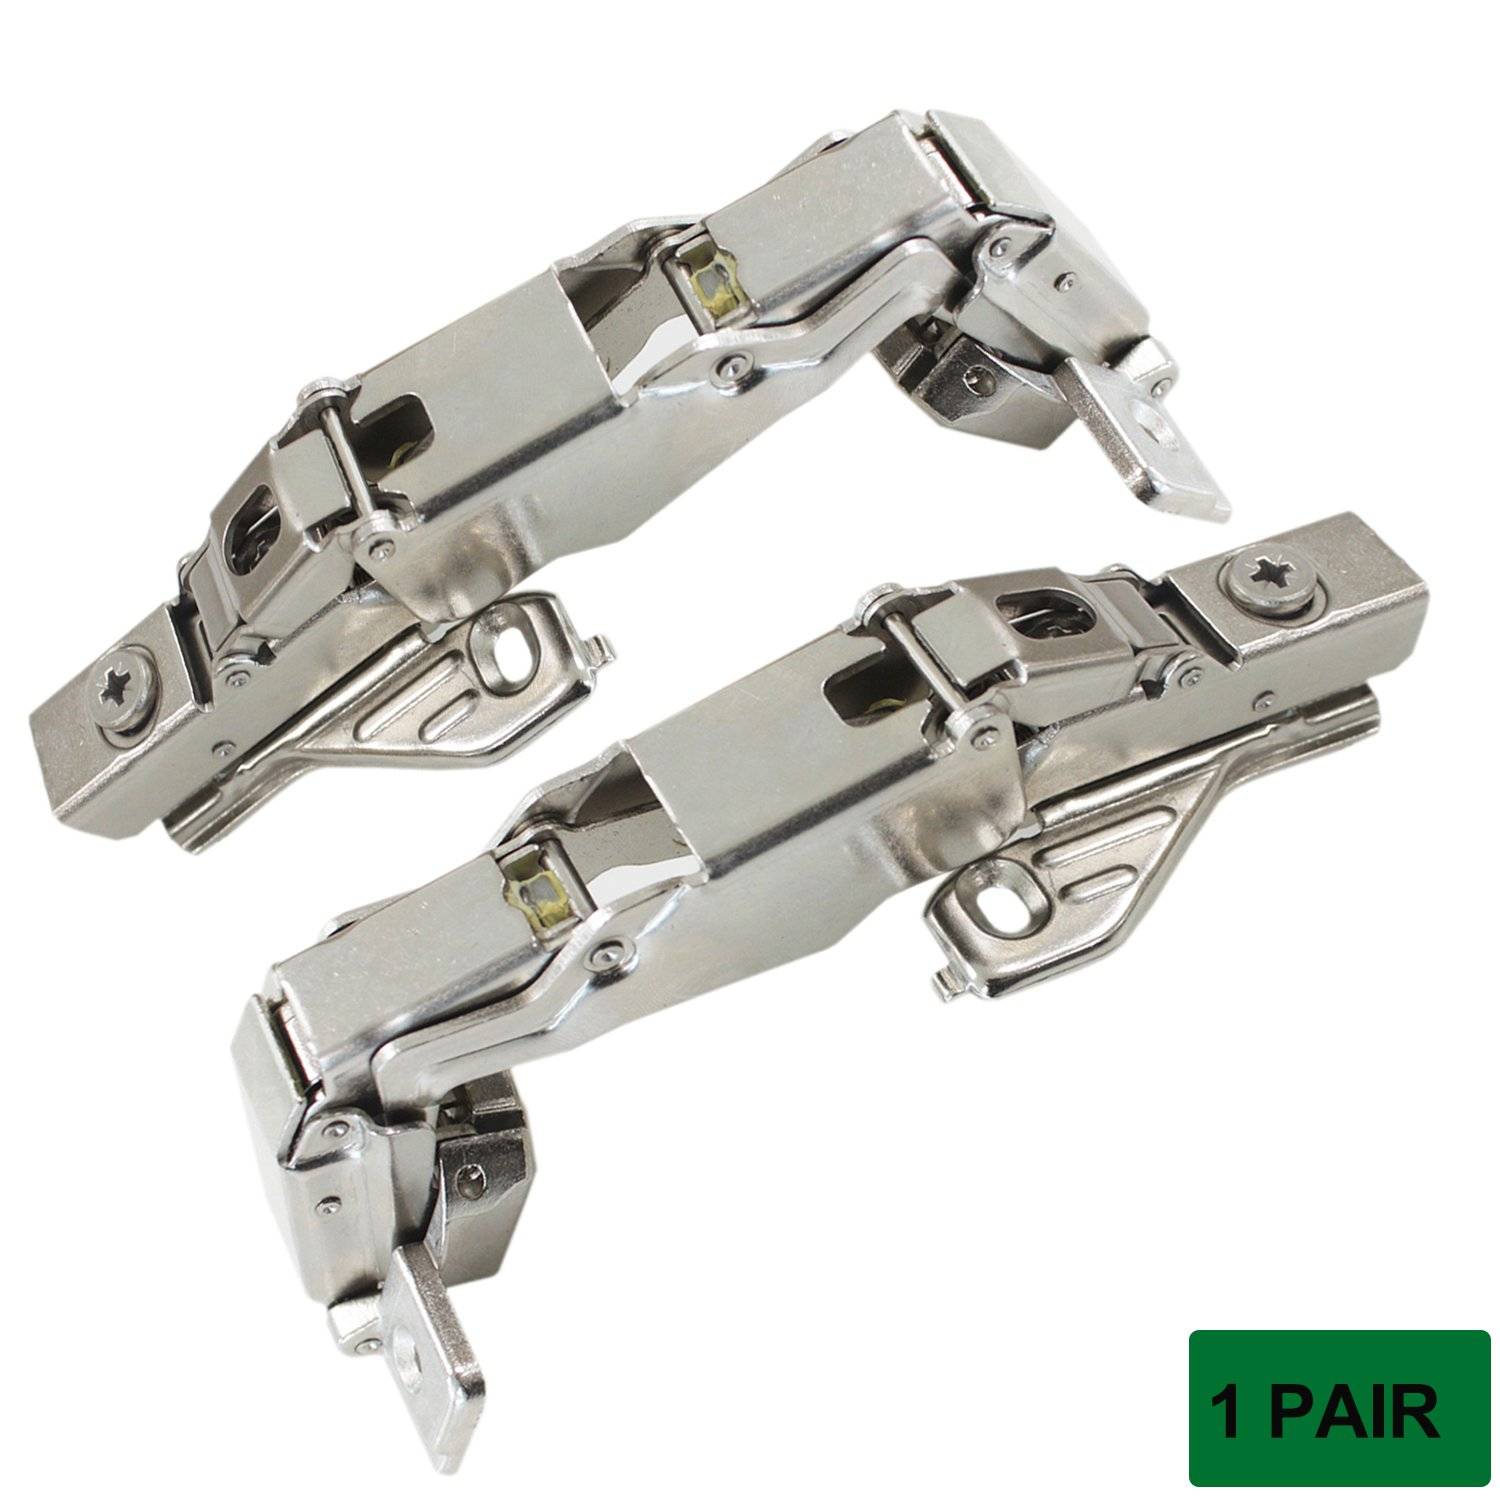 Probrico Face Frame Mount Soft Closing 165 Degree Full Overlay Cabinet  Hinges, 1 Pair     Amazon.com